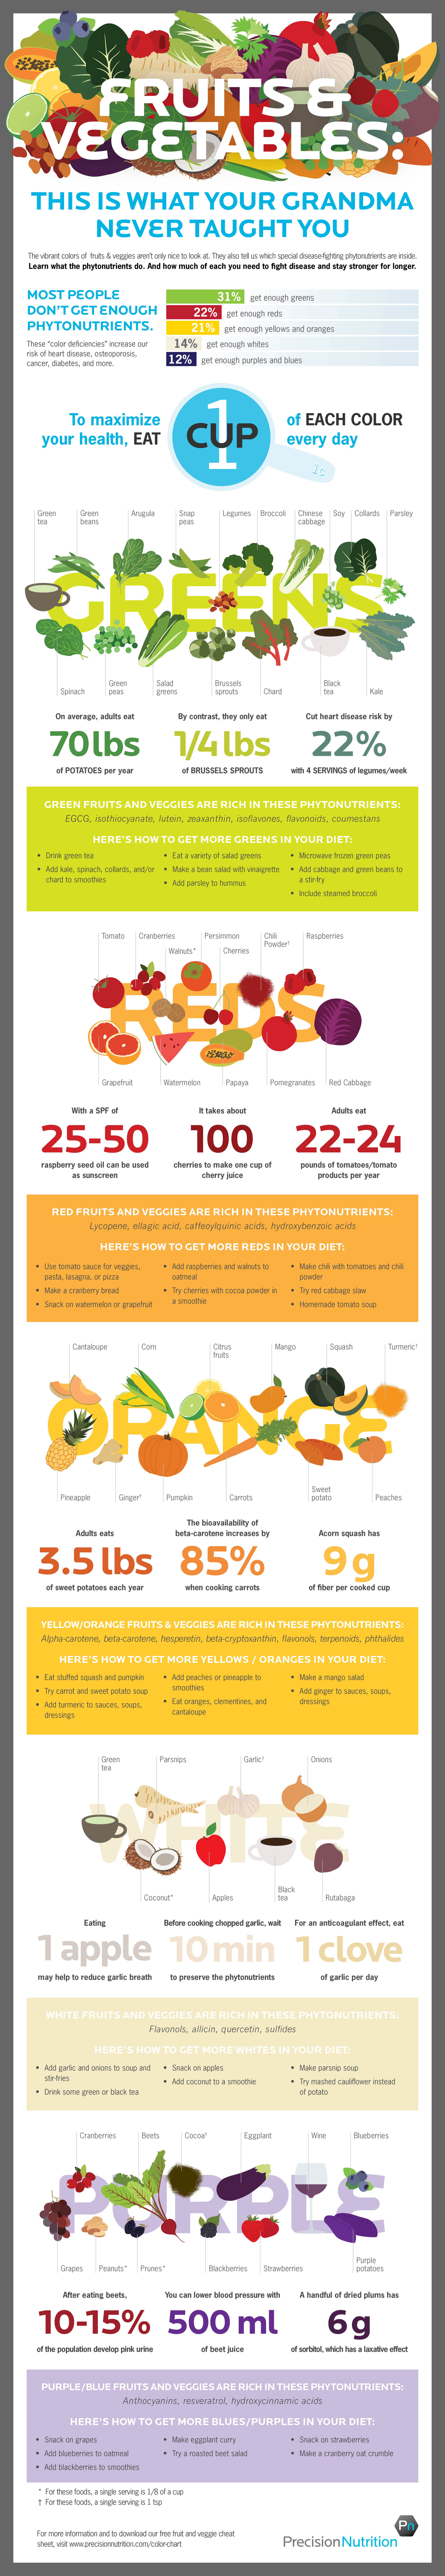 Fruits And Vegetables For Your Health